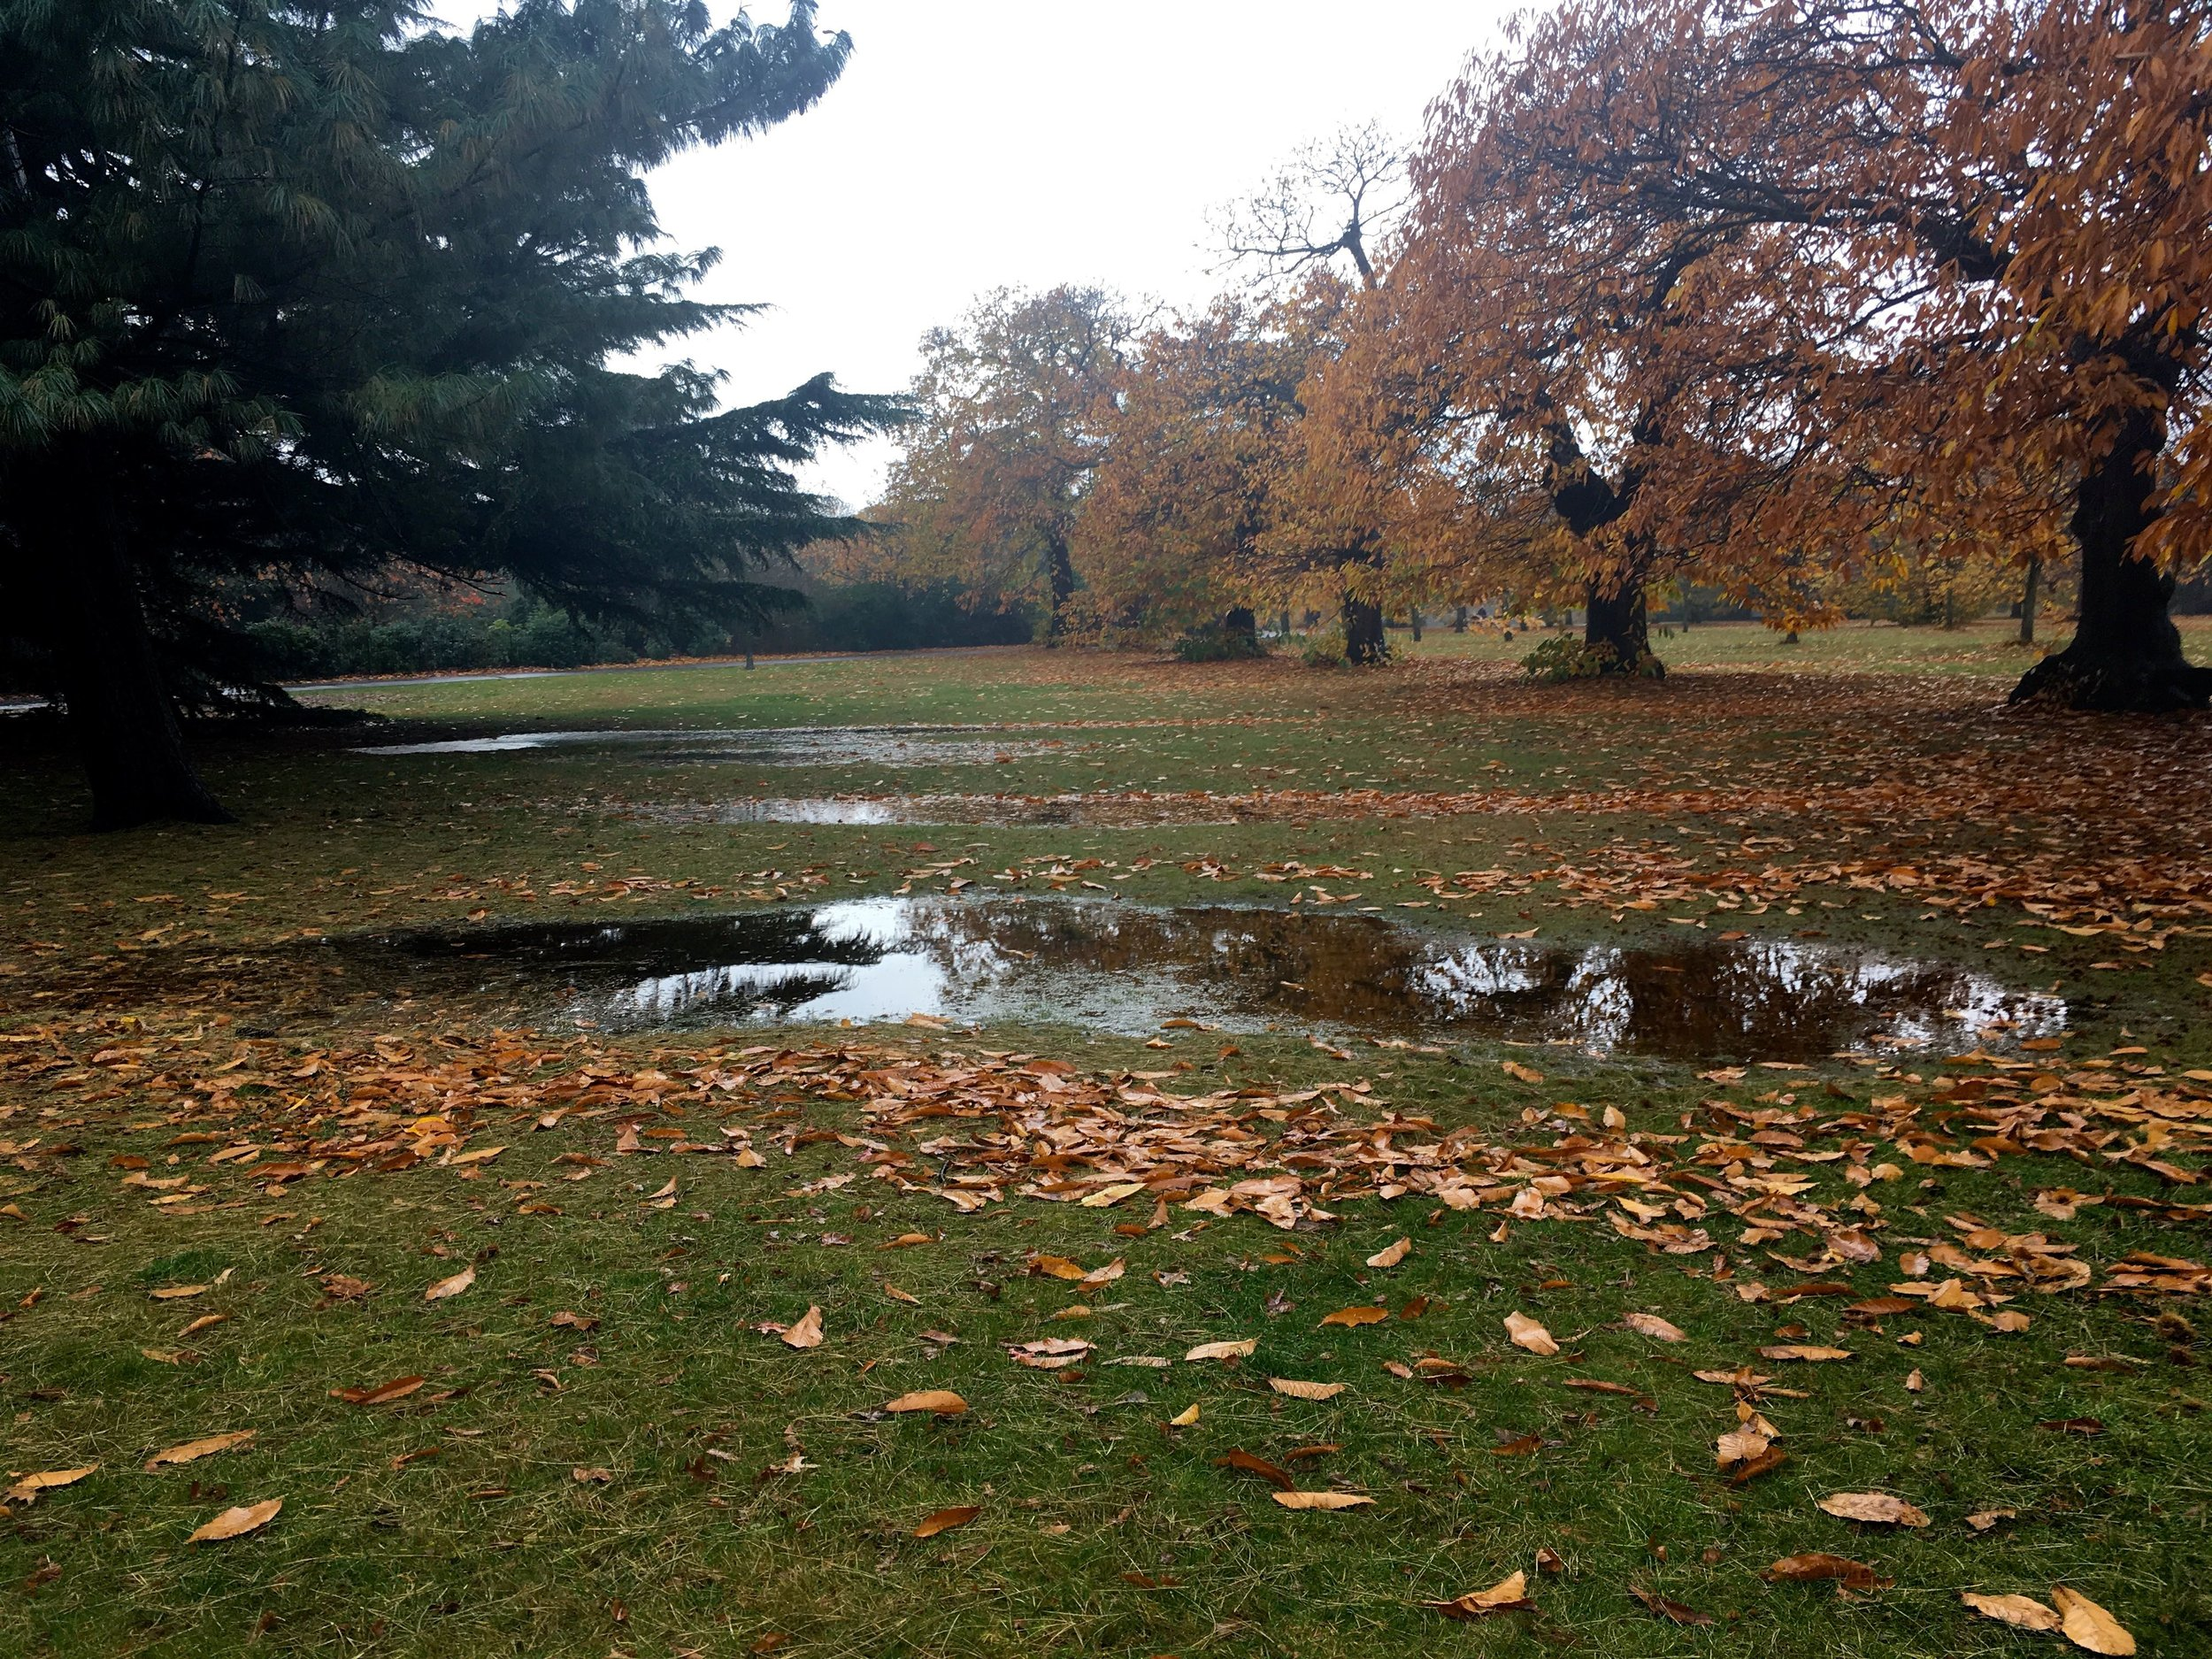 But there's been squelchier times too, after heavy rainfall there were puddles on the grass throughout greenwich park